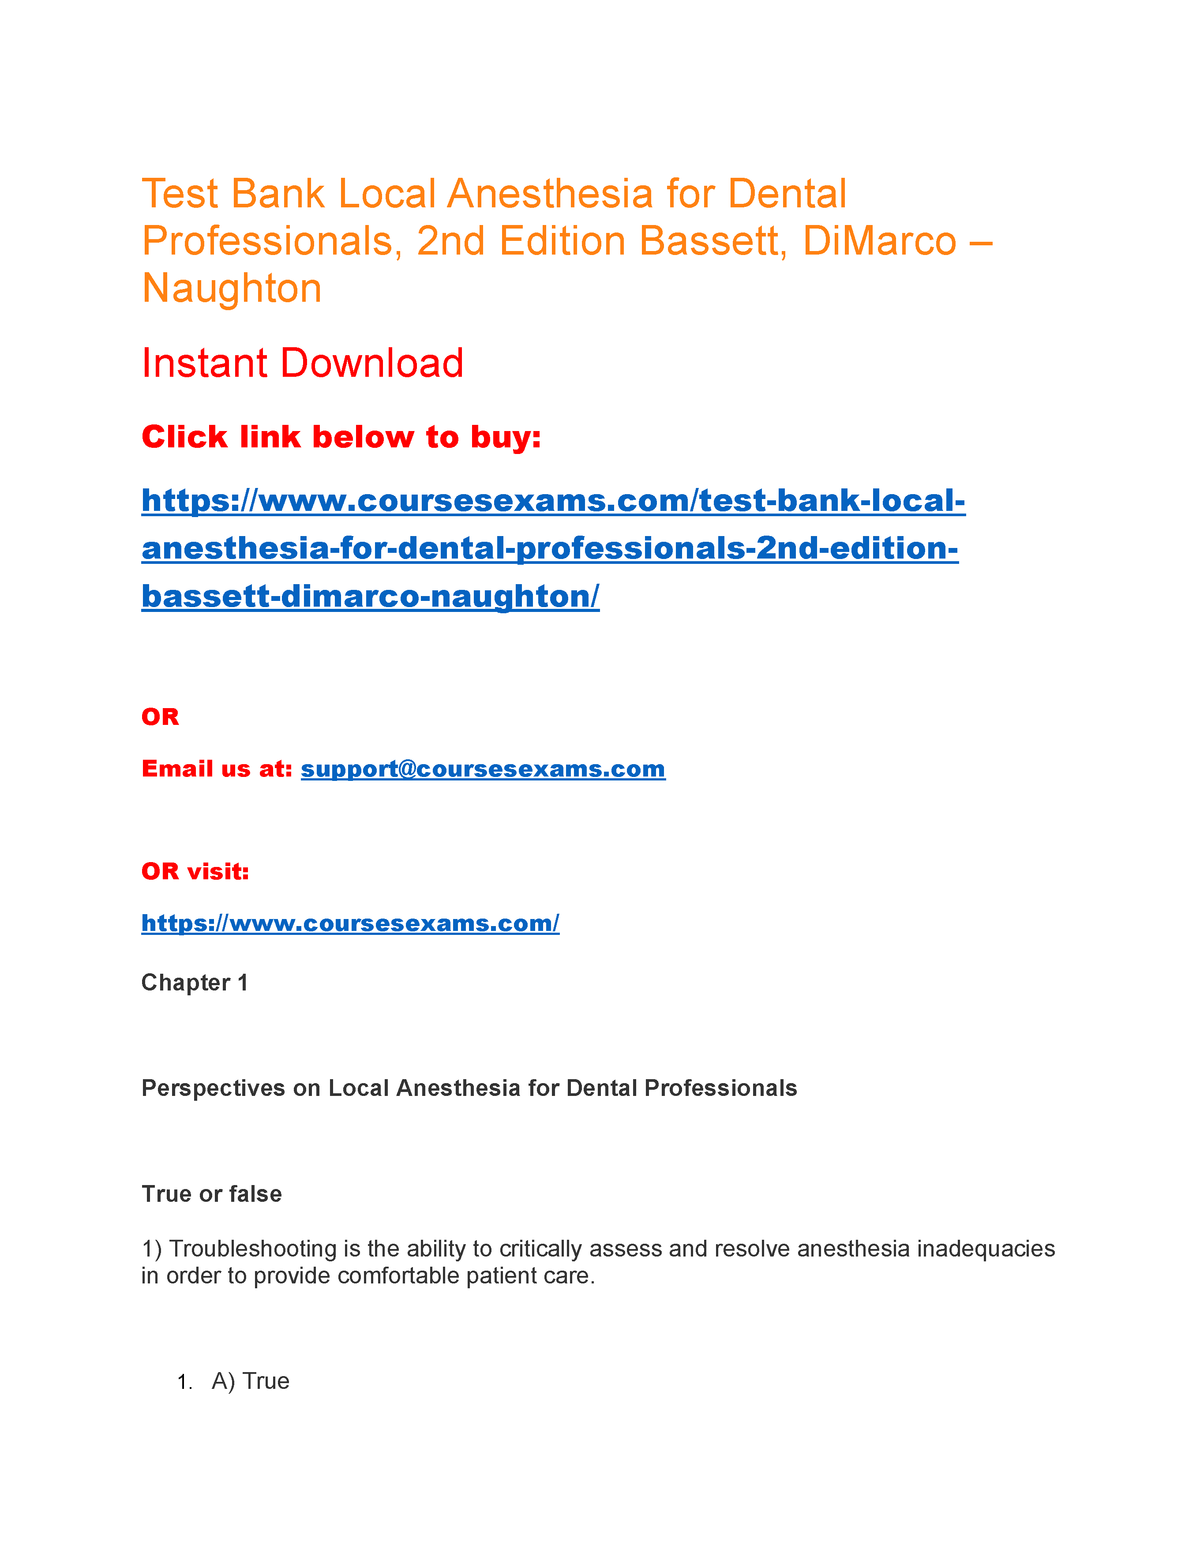 Test Bank Local Anesthesia for Dental Professionals, 2nd Edition